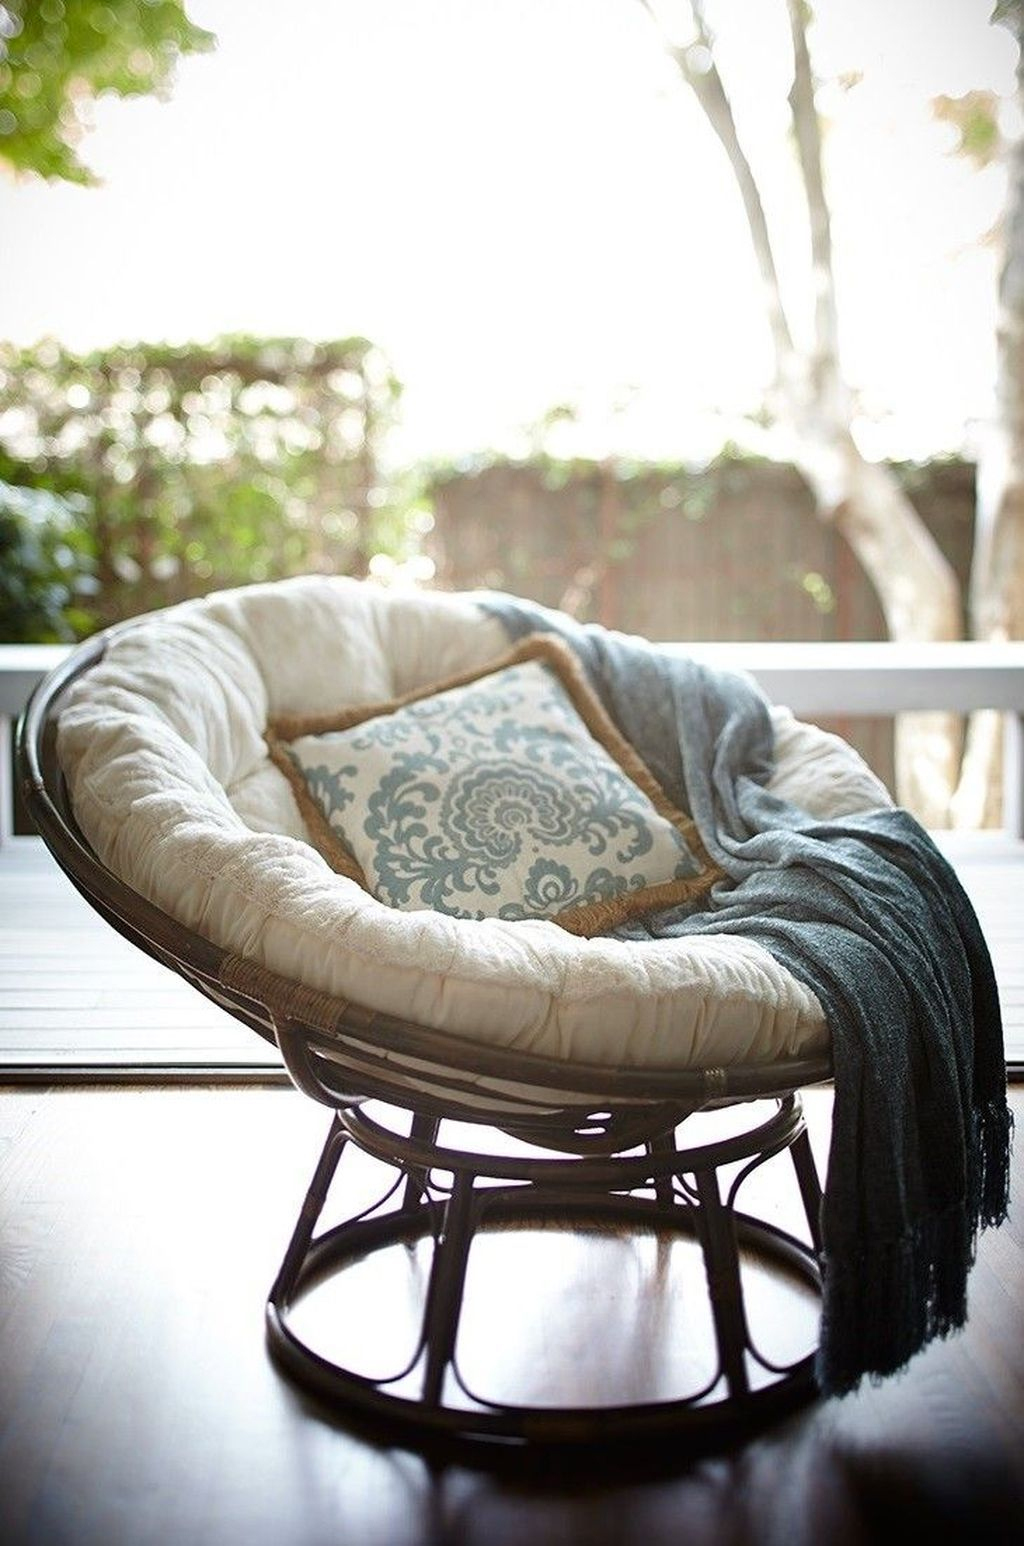 40+ A Startling Fact About Papasan Chair Uncovered | Papasan With Orndorff Tufted Papasan Chairs (View 10 of 15)